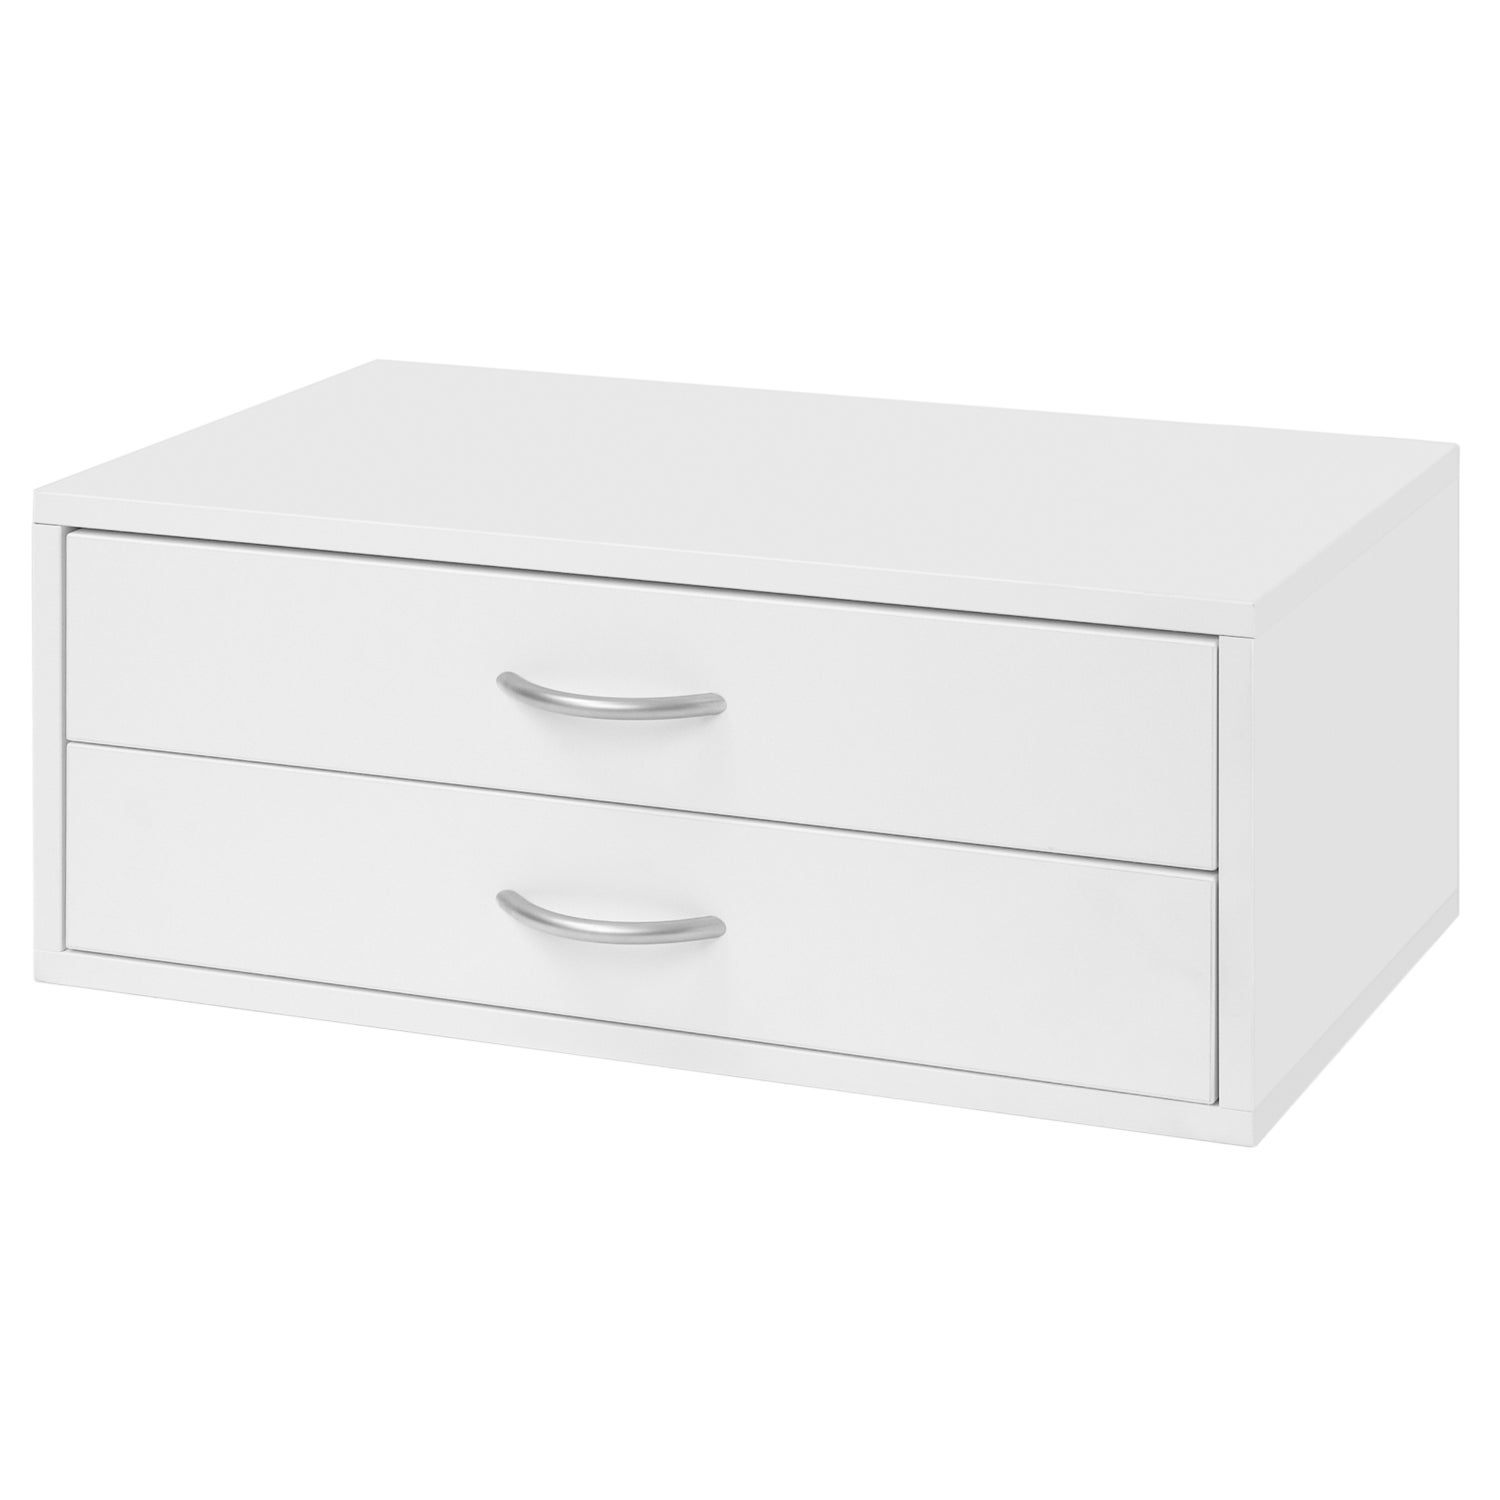 Shop Organized Living FreedomRail O Box White 2 Drawer Hanging Closet  Organizer   Free Shipping Today   Overstock.com   6415627